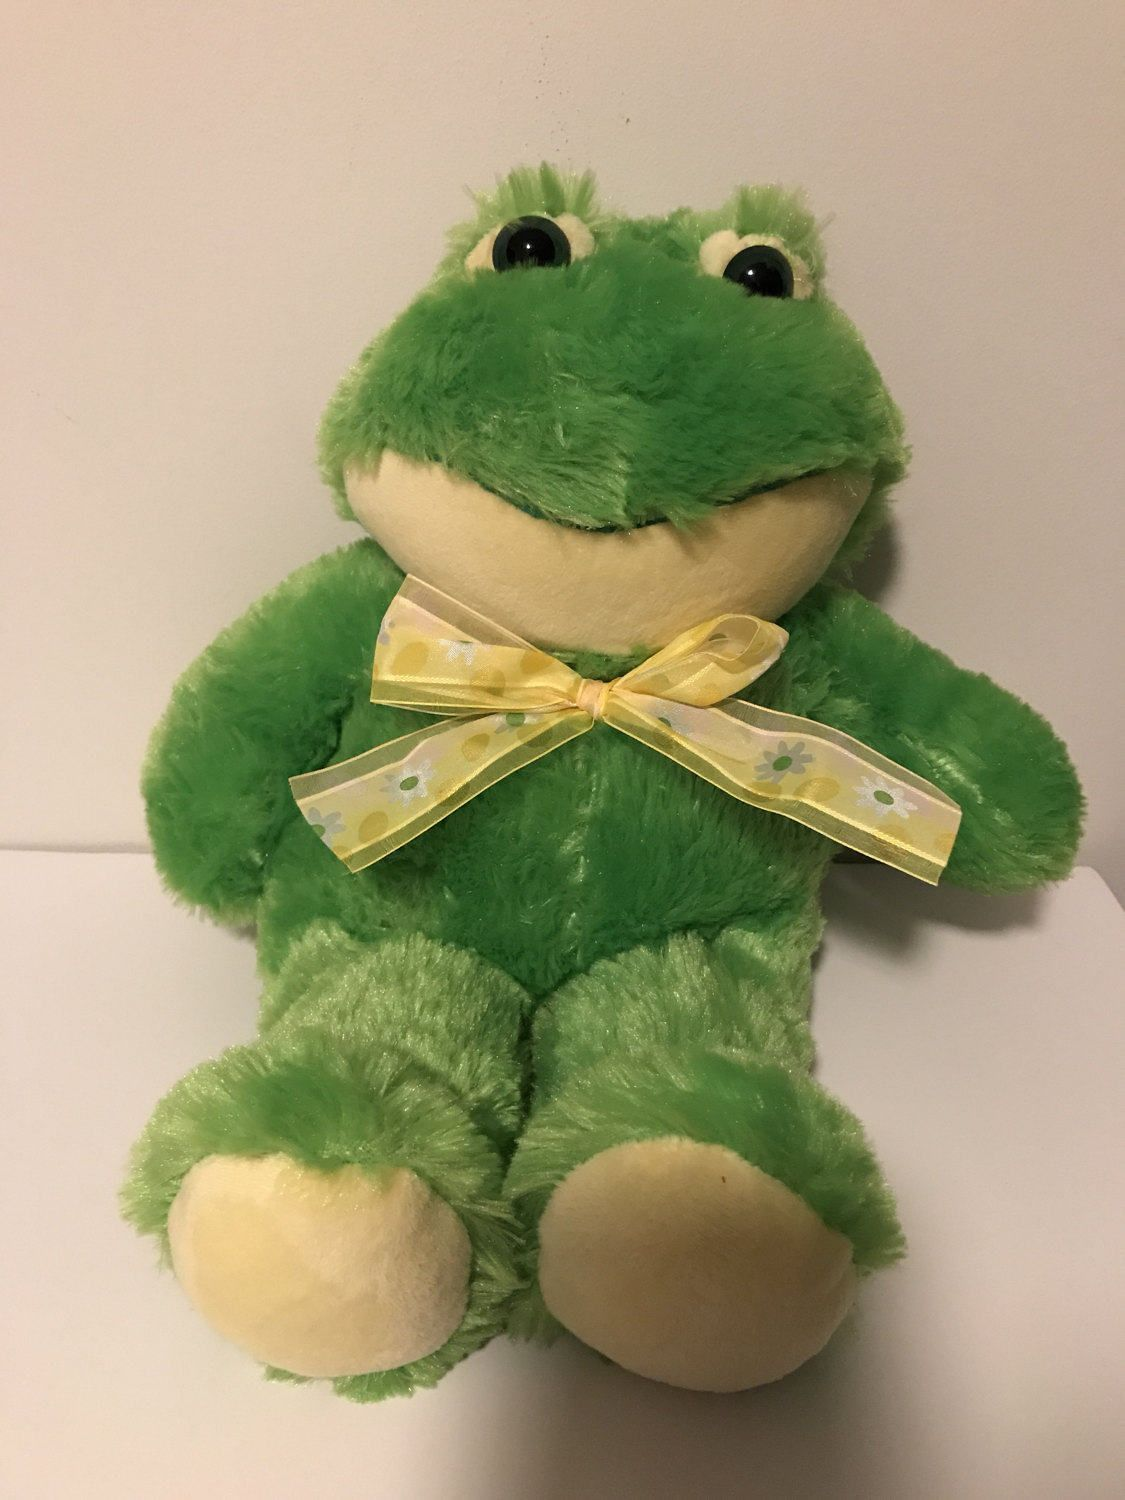 Weighted Stuffed Animal Frog Large 6 Lbs Sensory Toy Washable By